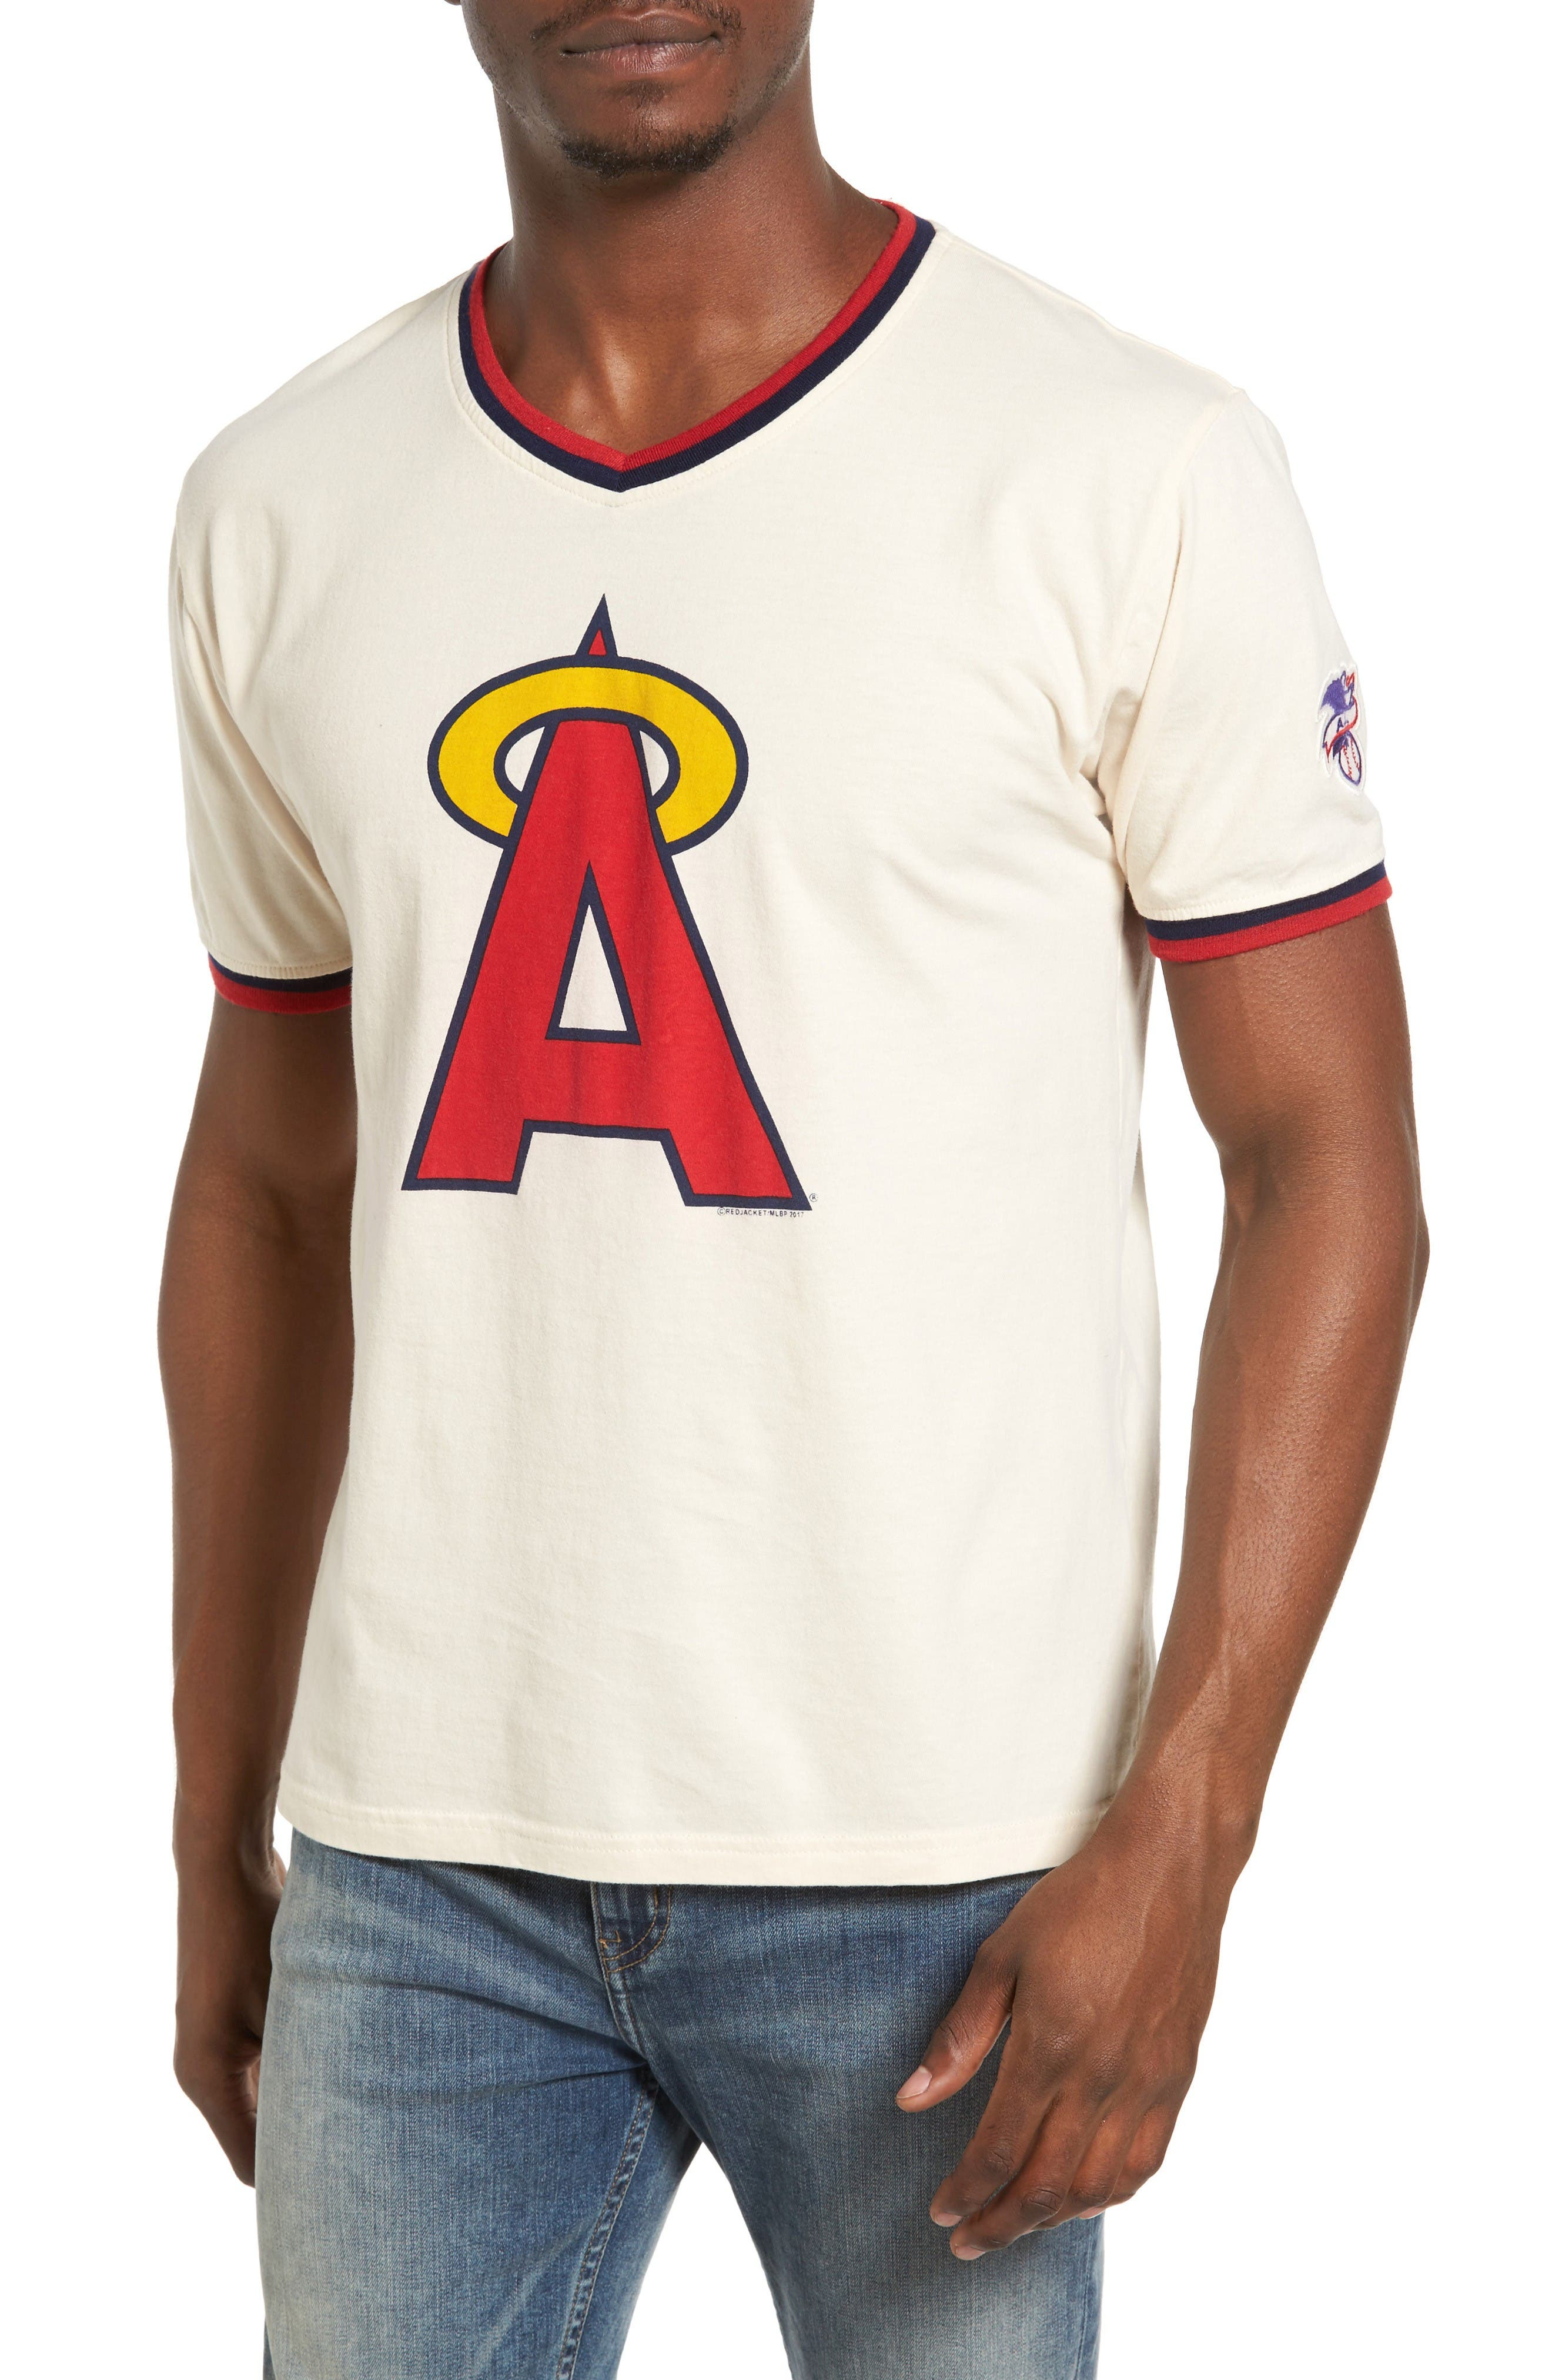 Alternate Image 1 Selected - American Needle Eastwood Los Angeles Angels of Anaheim T-Shirt